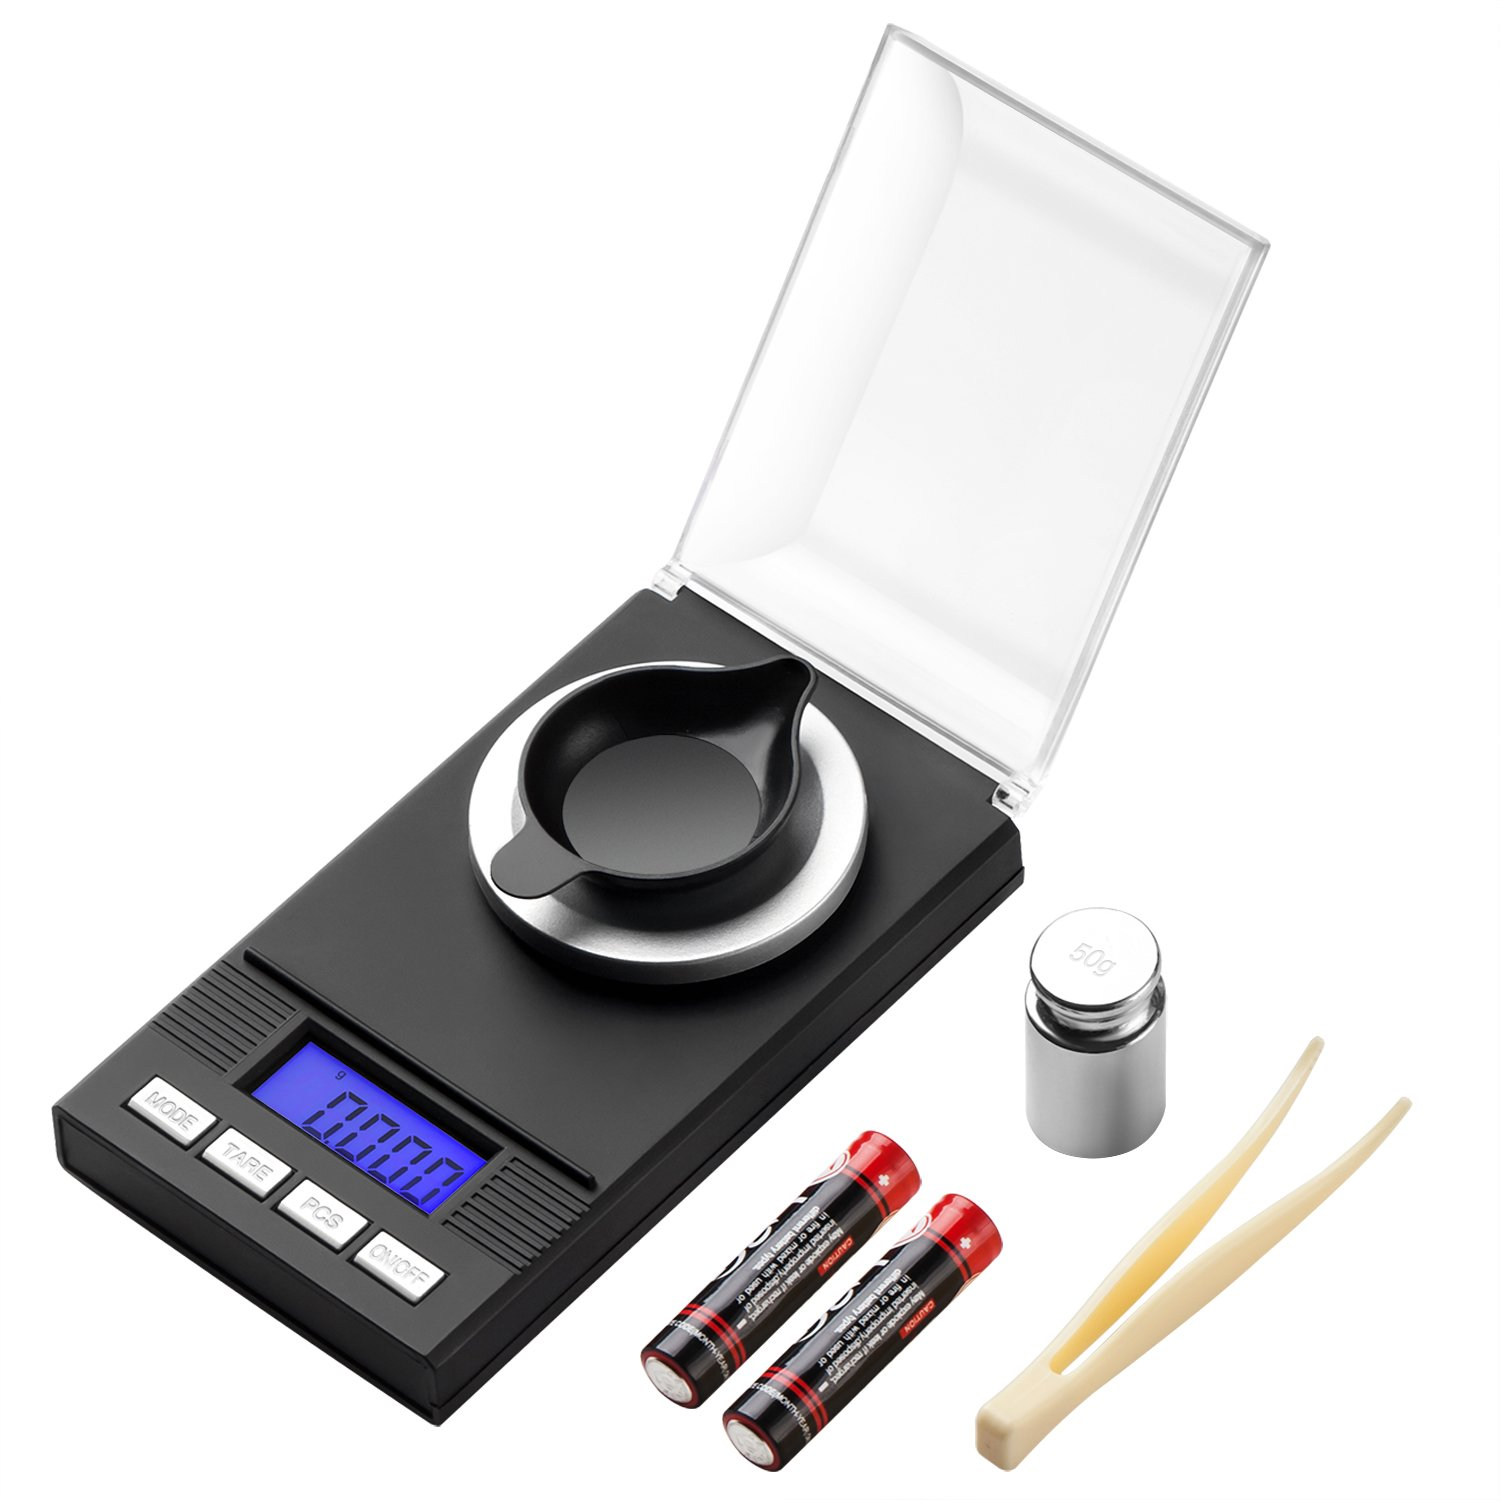 KEEGH High-Precision Digital Milligram Pocket Scale 50g / 0.001g Reloading, Jewelry Scale,Tare & PCS, LCD Display with Calibration Weights and 2 AAA Batteries